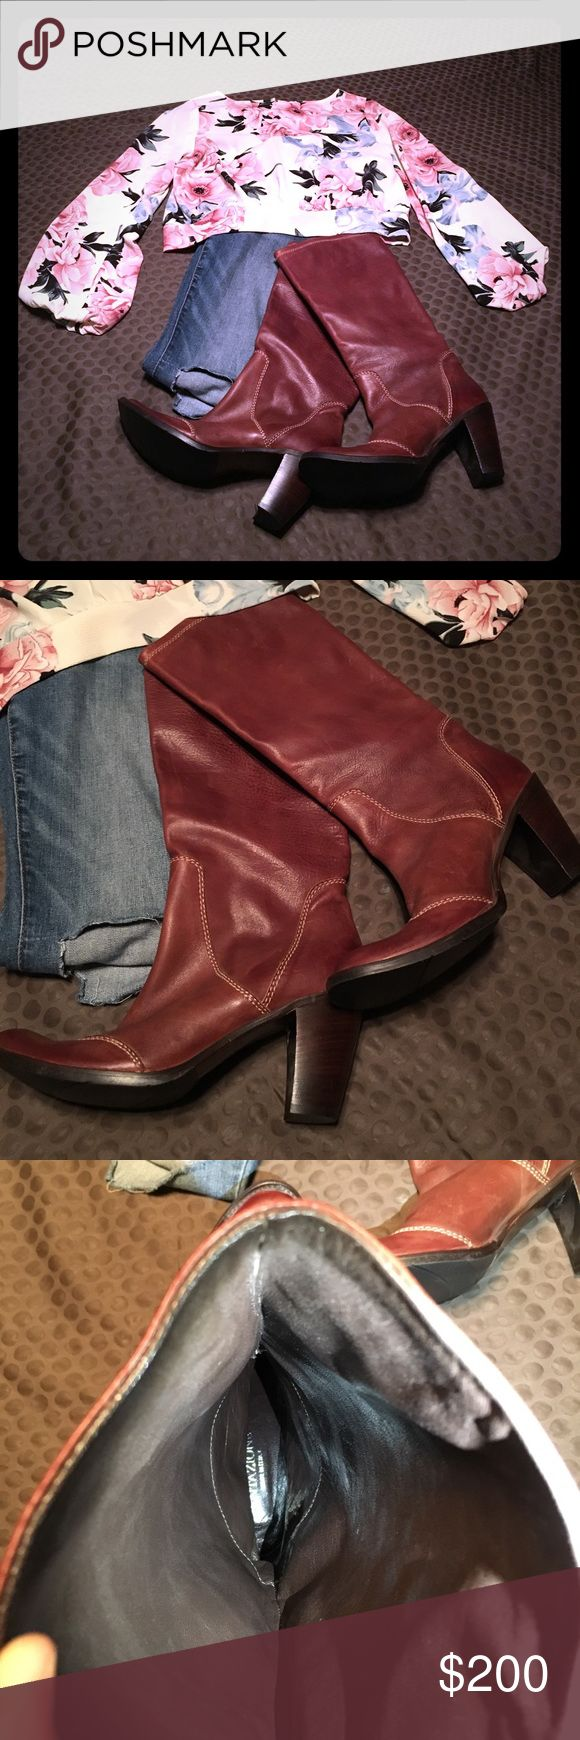 Light Brown Leather Boots Tentazione Brown genuine leather  boot with stitching.  Size 38/US 8.  Made in Italy Shoes Heeled Boots